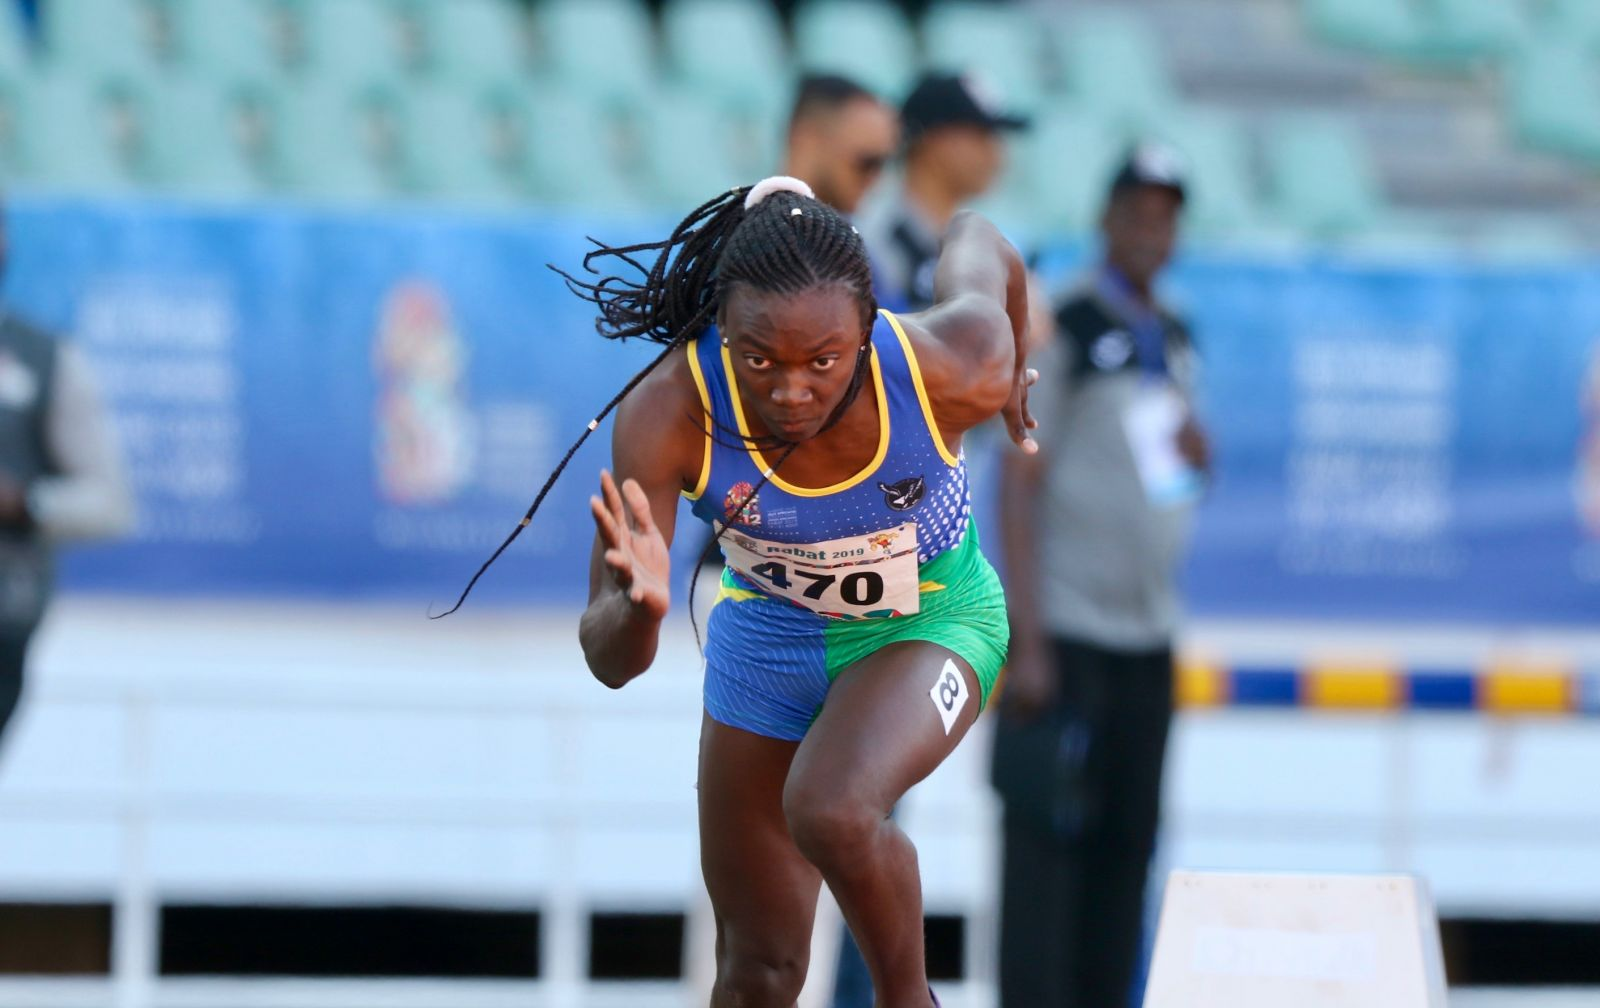 Namibia's teen sensation wins 200m gold in South Africa